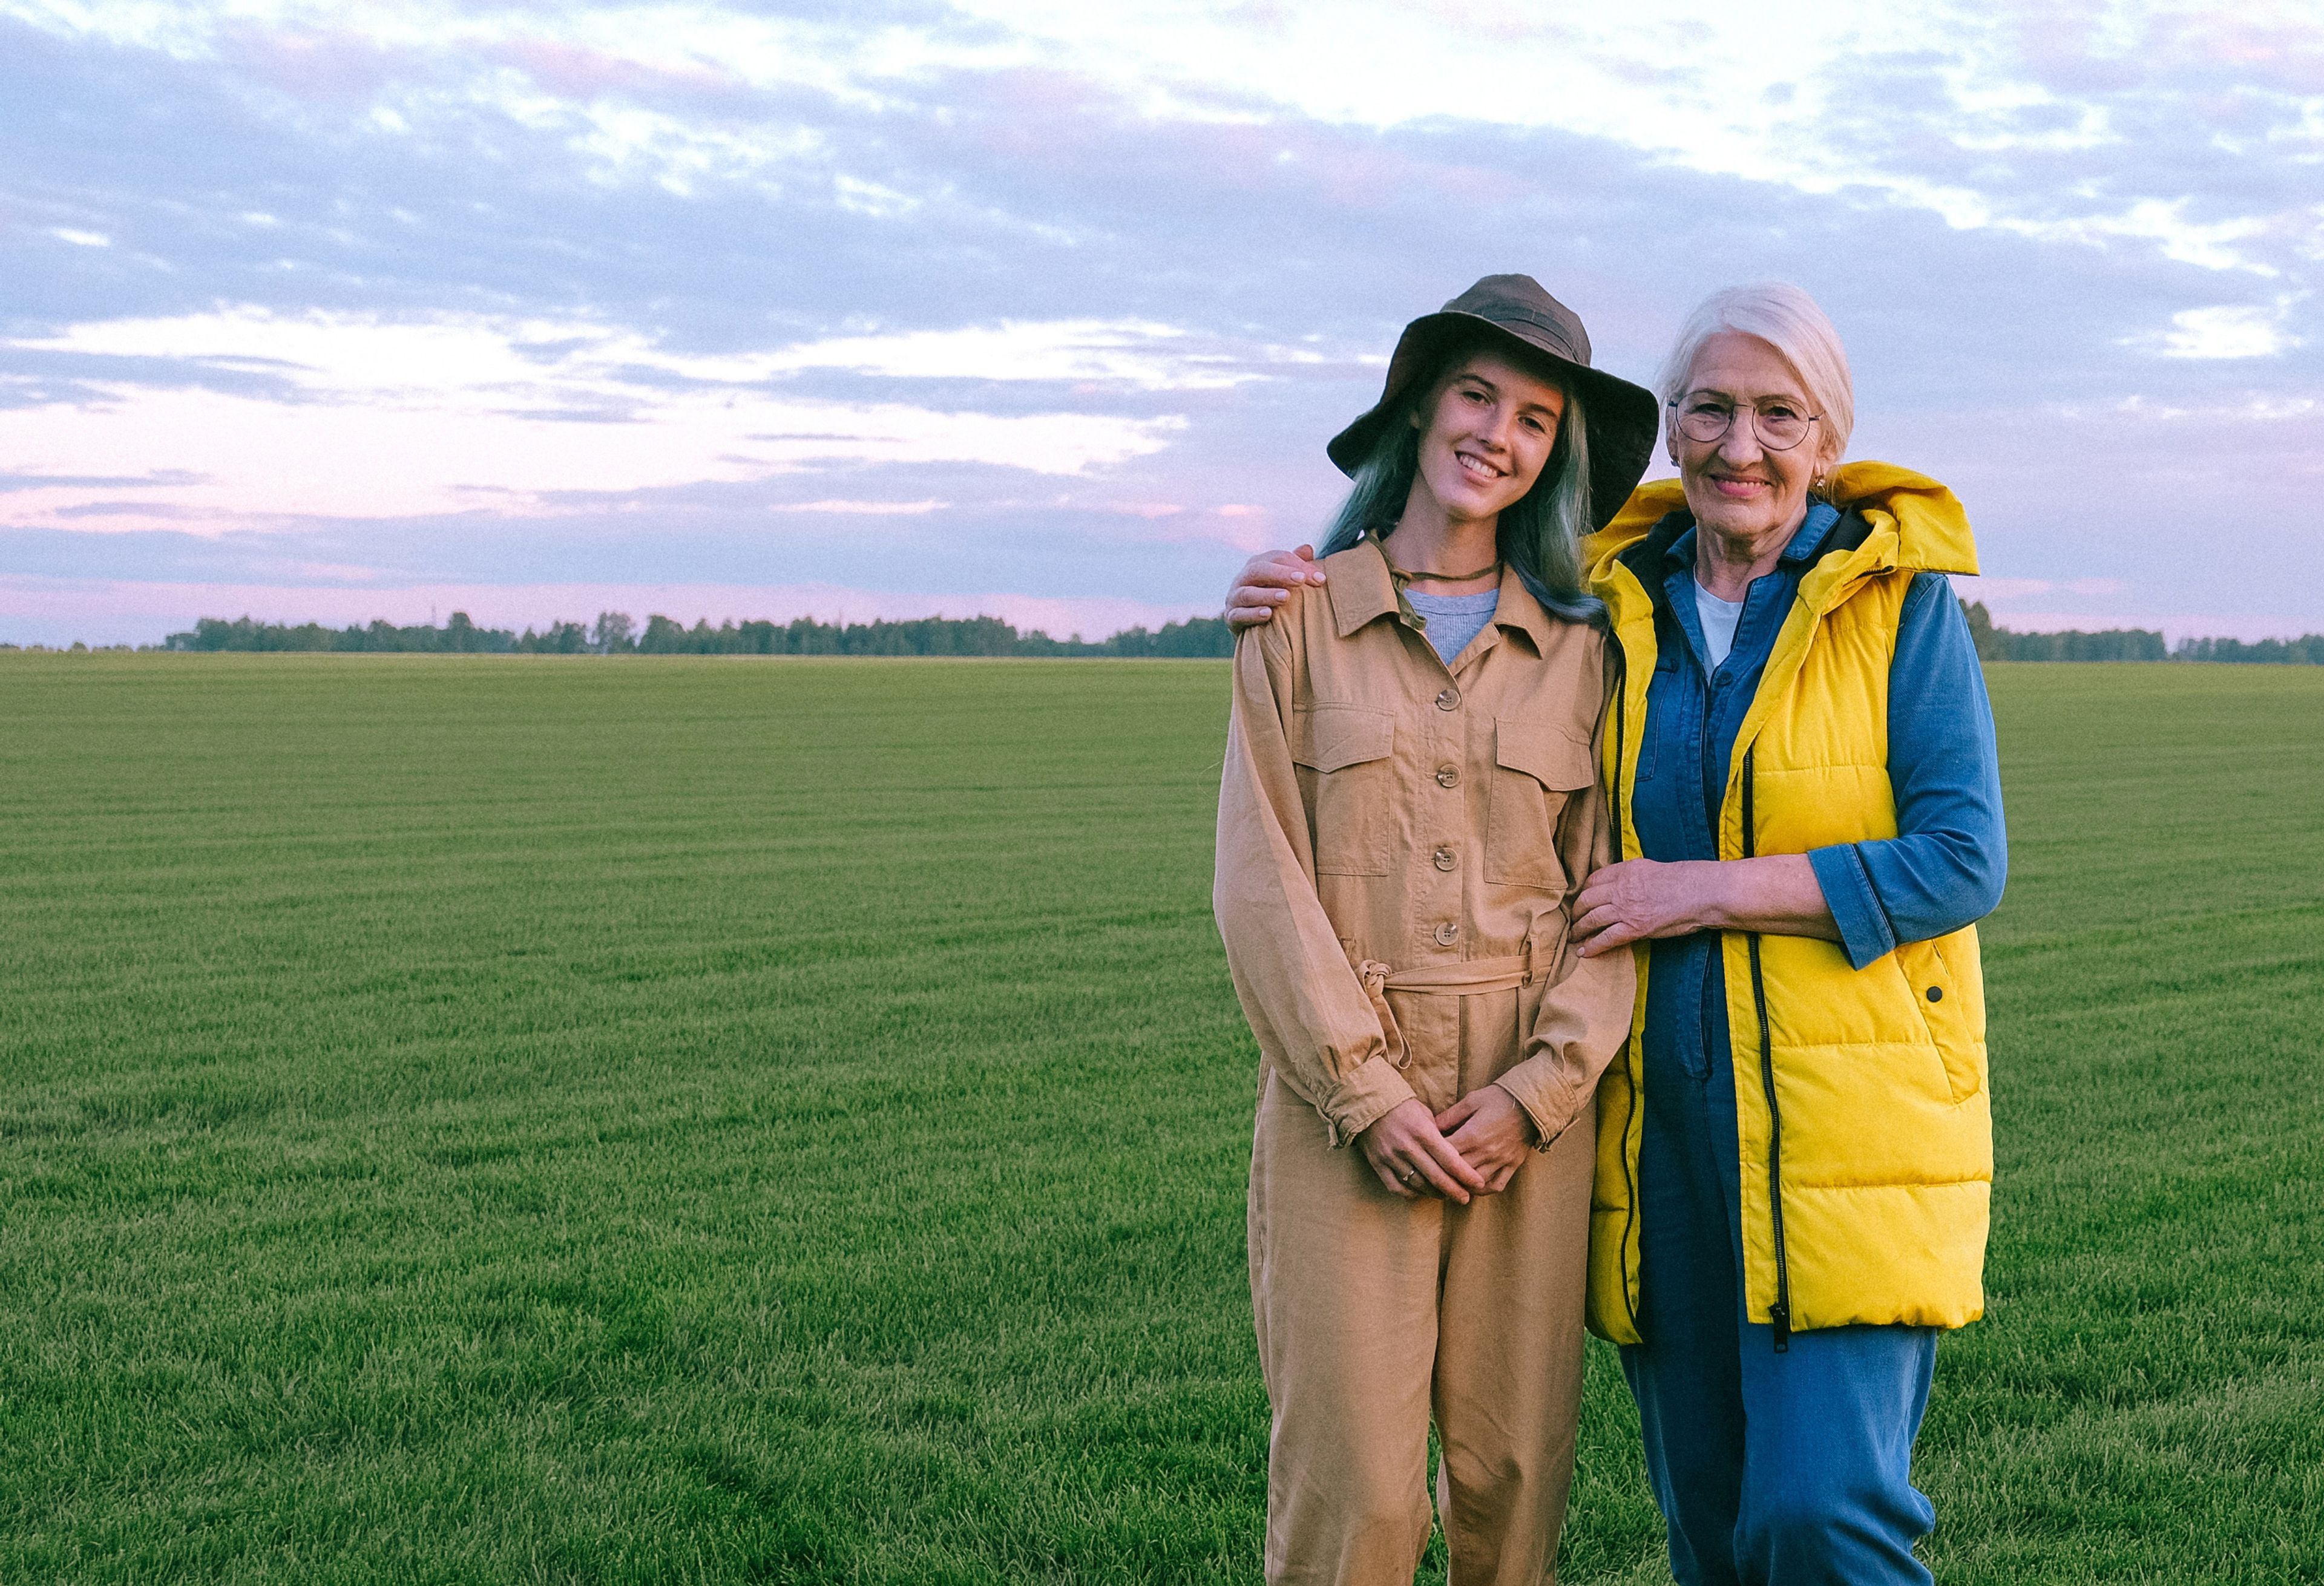 A young lady and older lady standing in a field